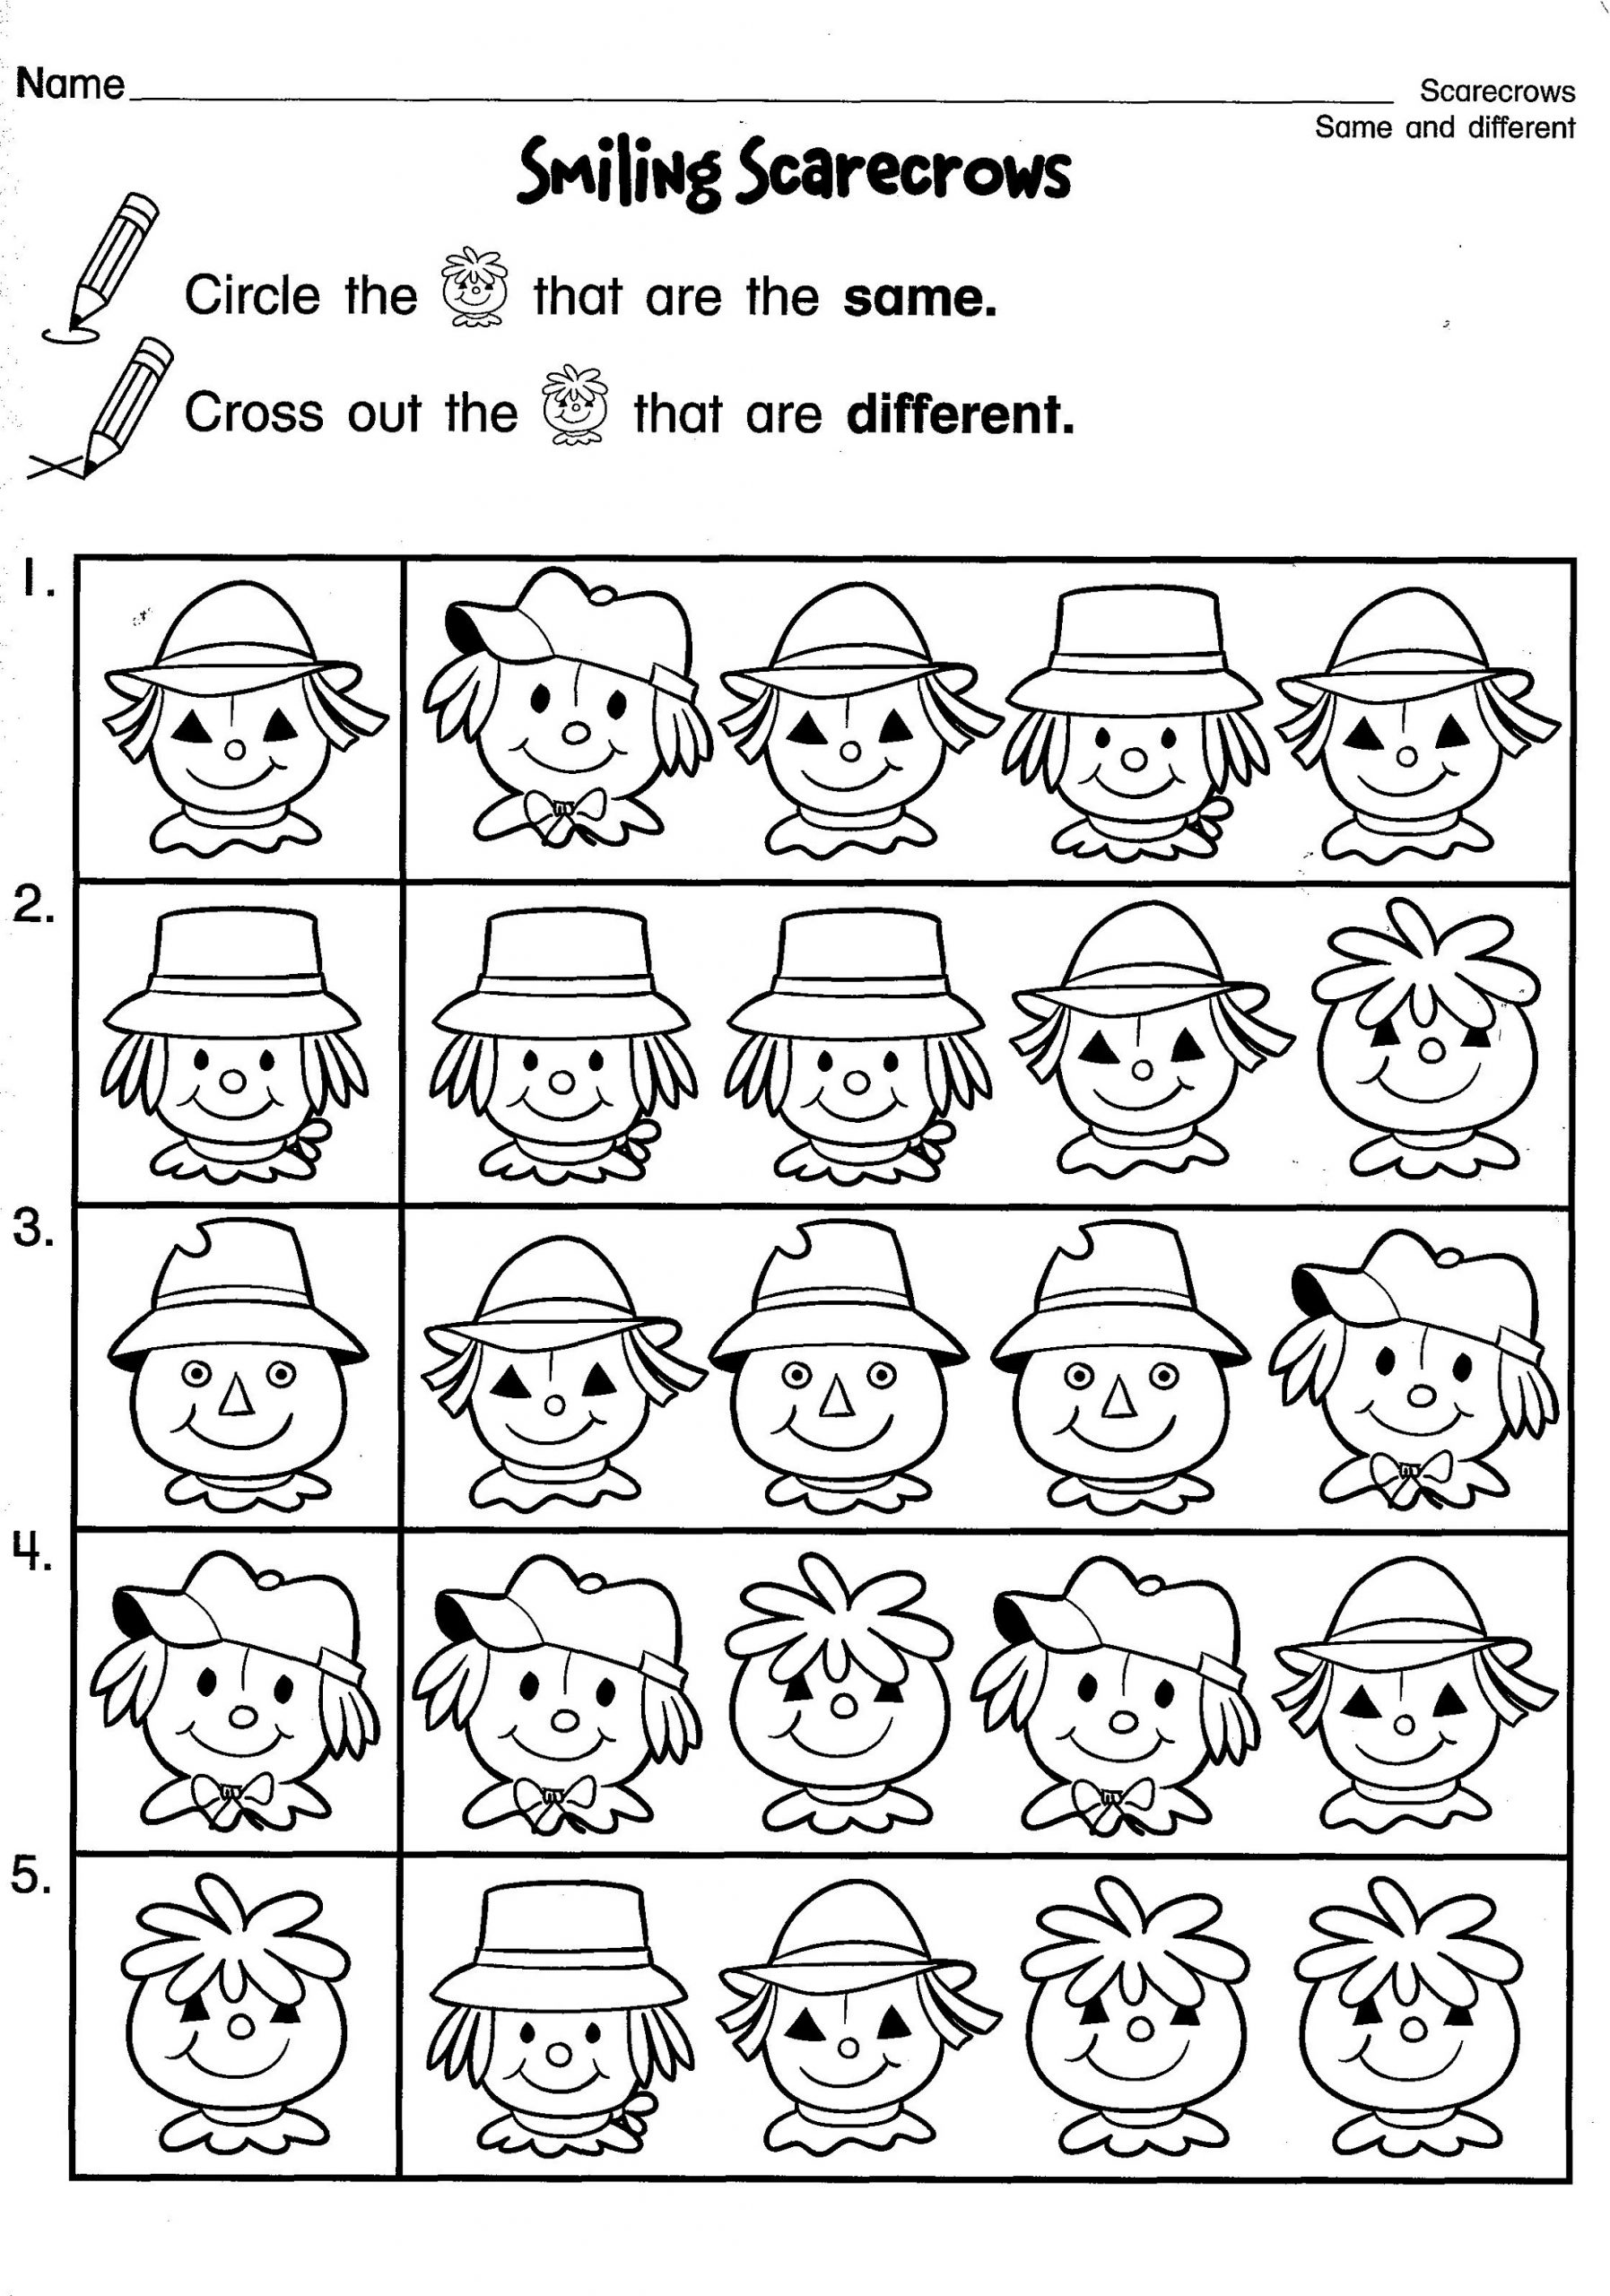 Fun Same And Different Worksheets For Kids